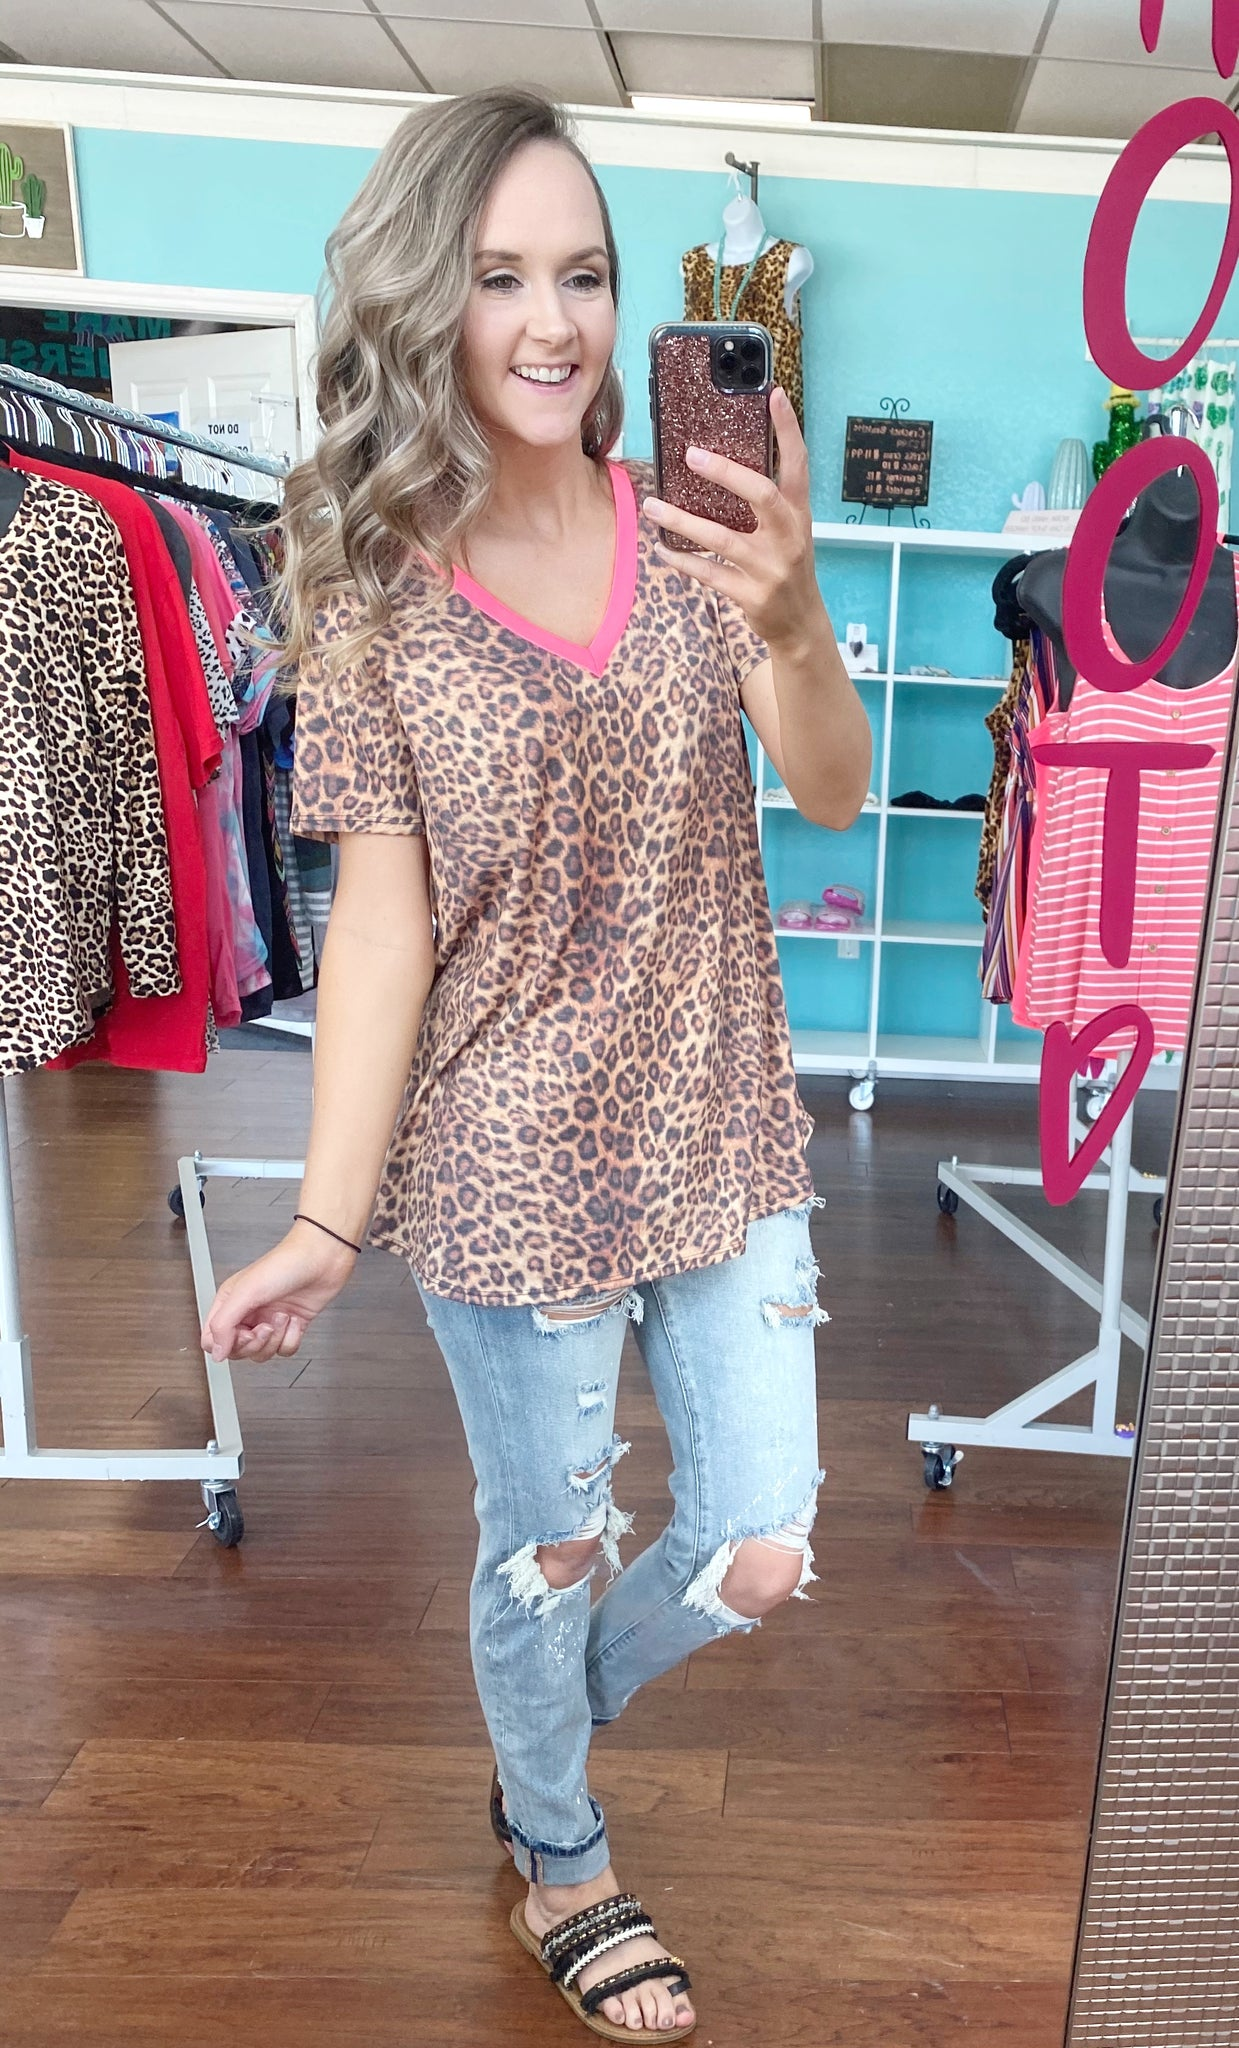 Leopard neon band top